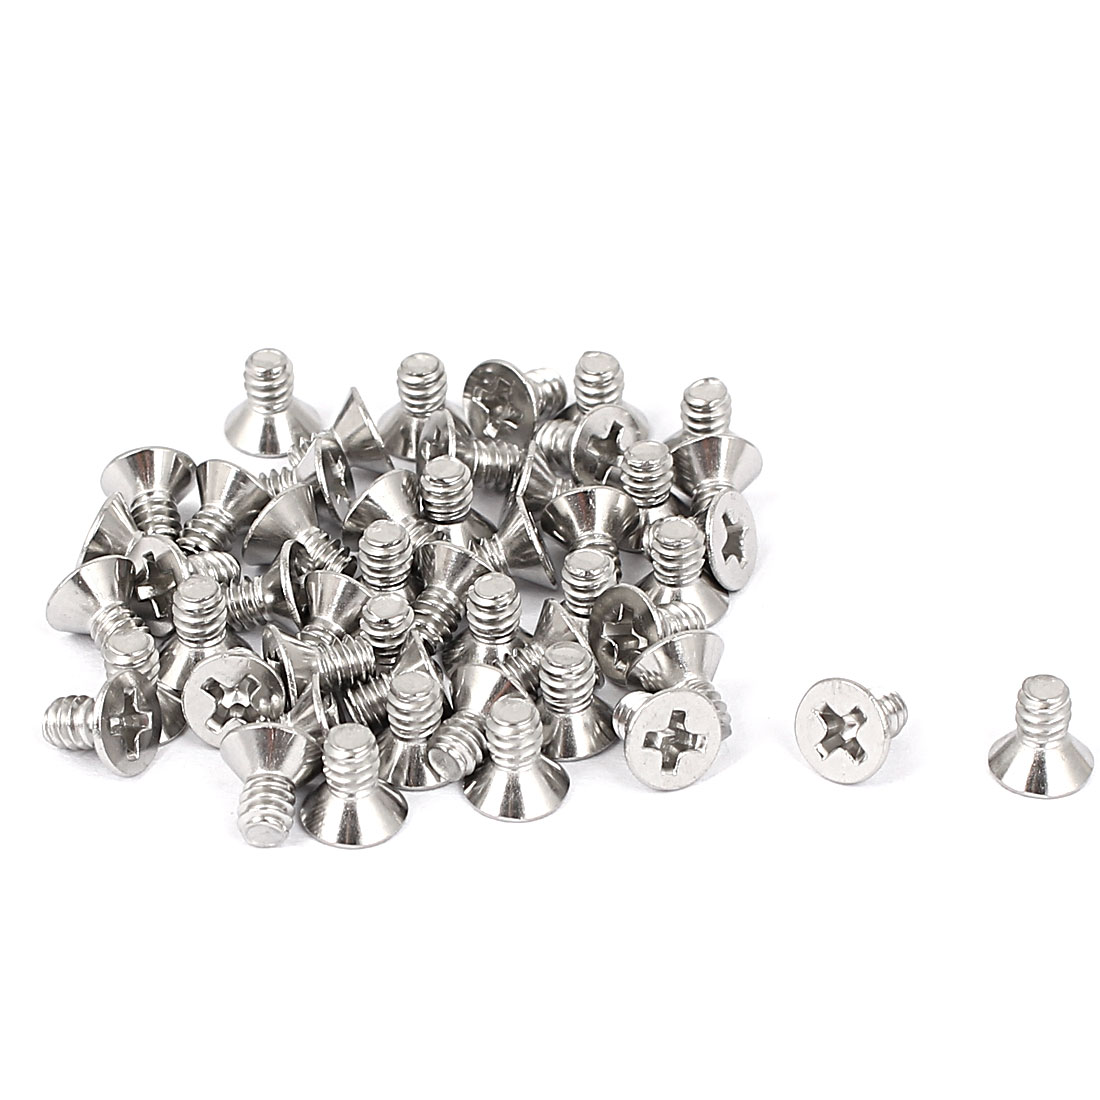 "6#-32x1/4"" Stainless Steel Phillips Flat Countersunk Head Screws 50pcs"